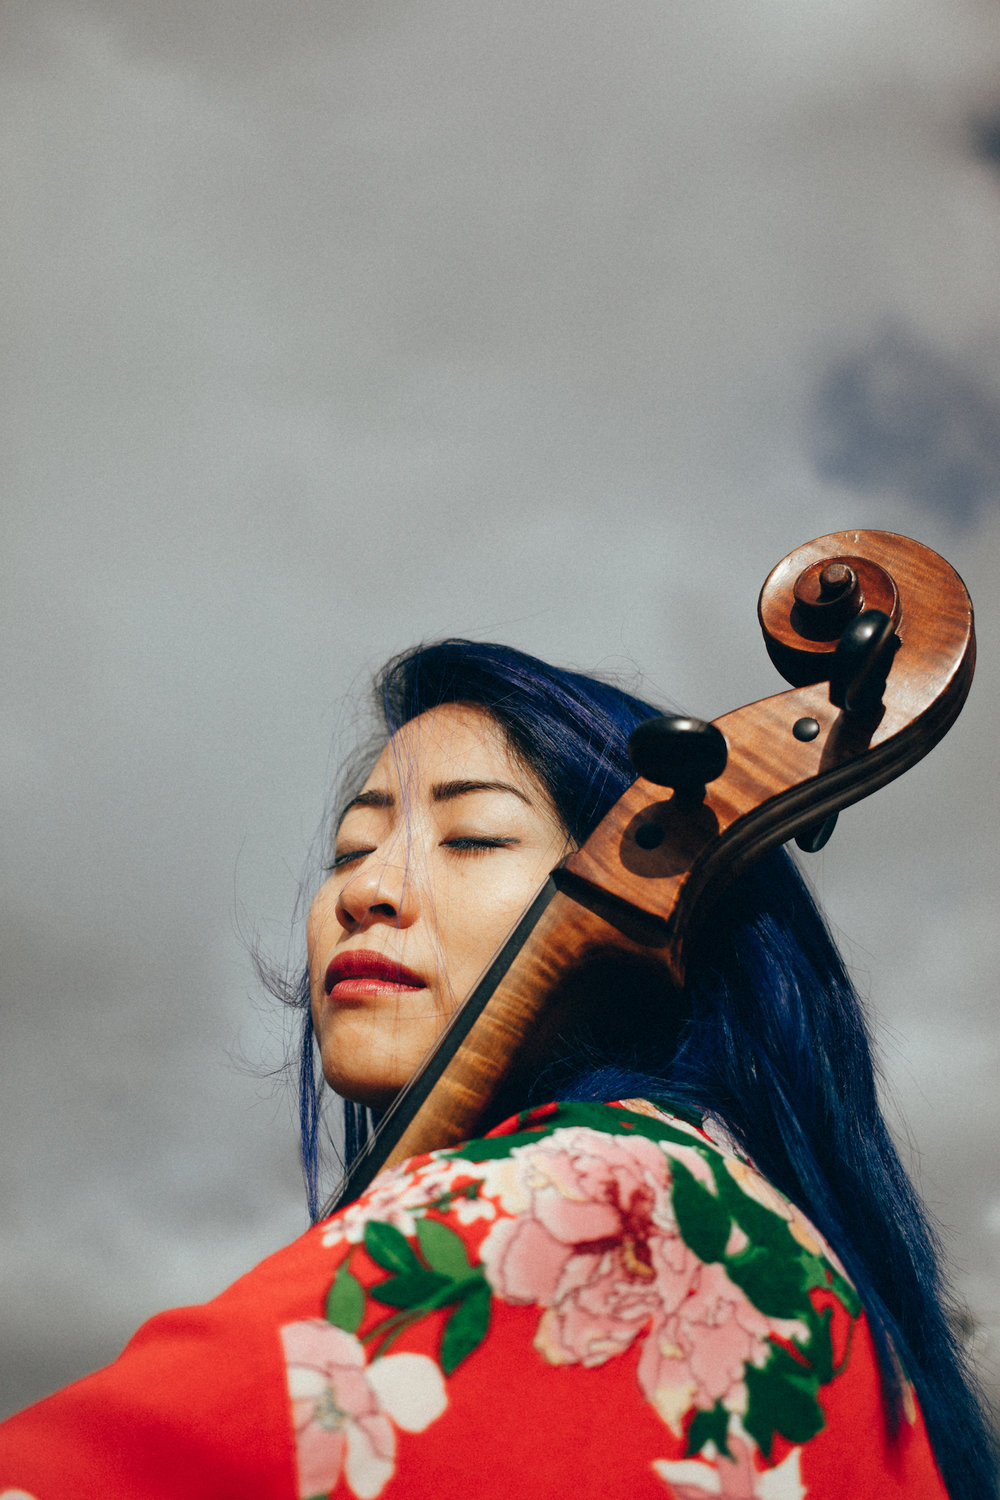 The-Wong-Janice-online-session-cellist-Amsterdam-photo-by-Hellen-Koroleva-instagram-imaginationinyou.jpg